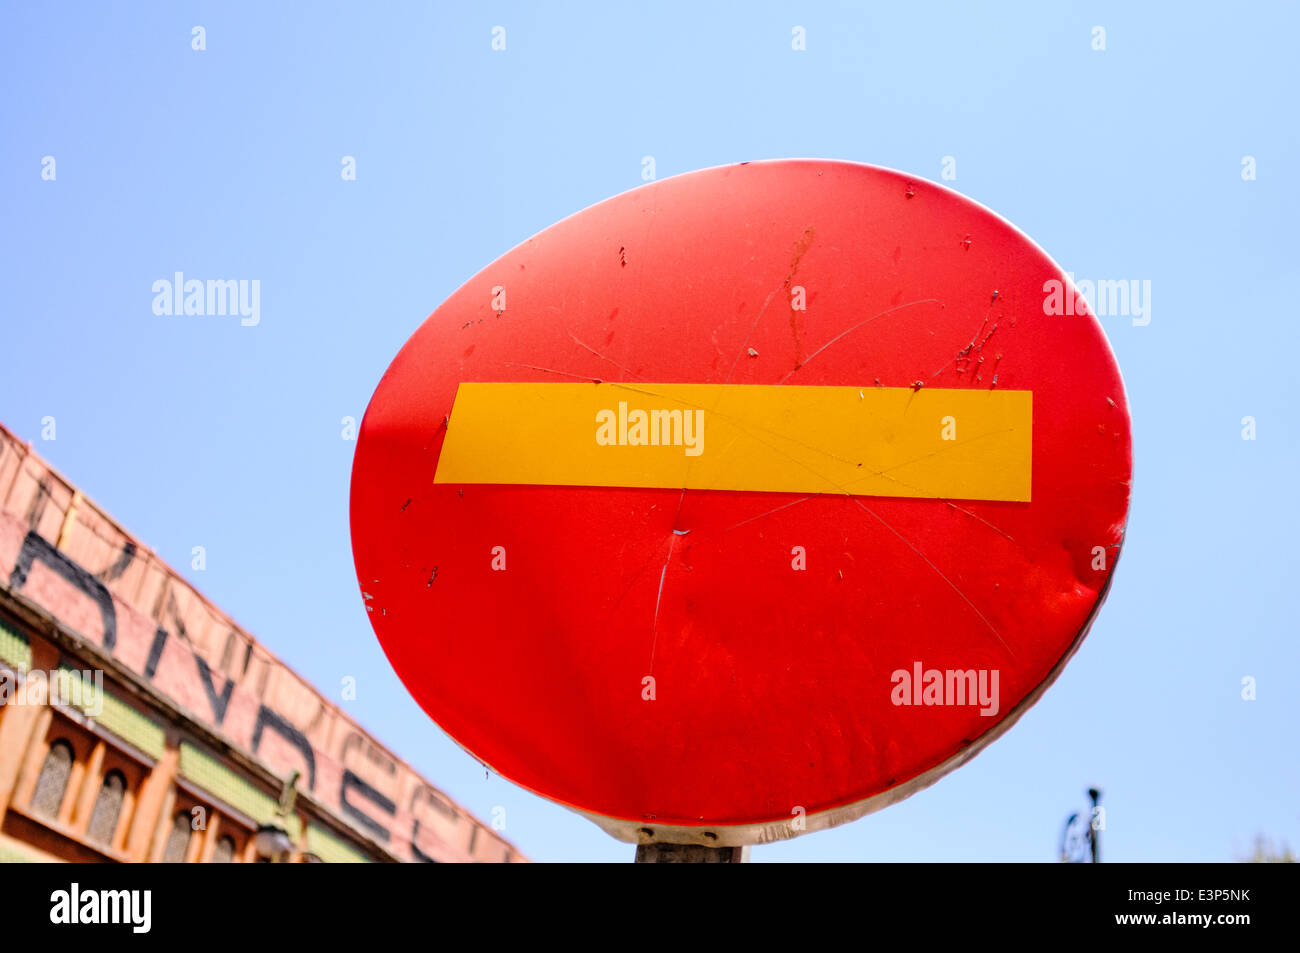 Red and yellow no entry street sign - Stock Image